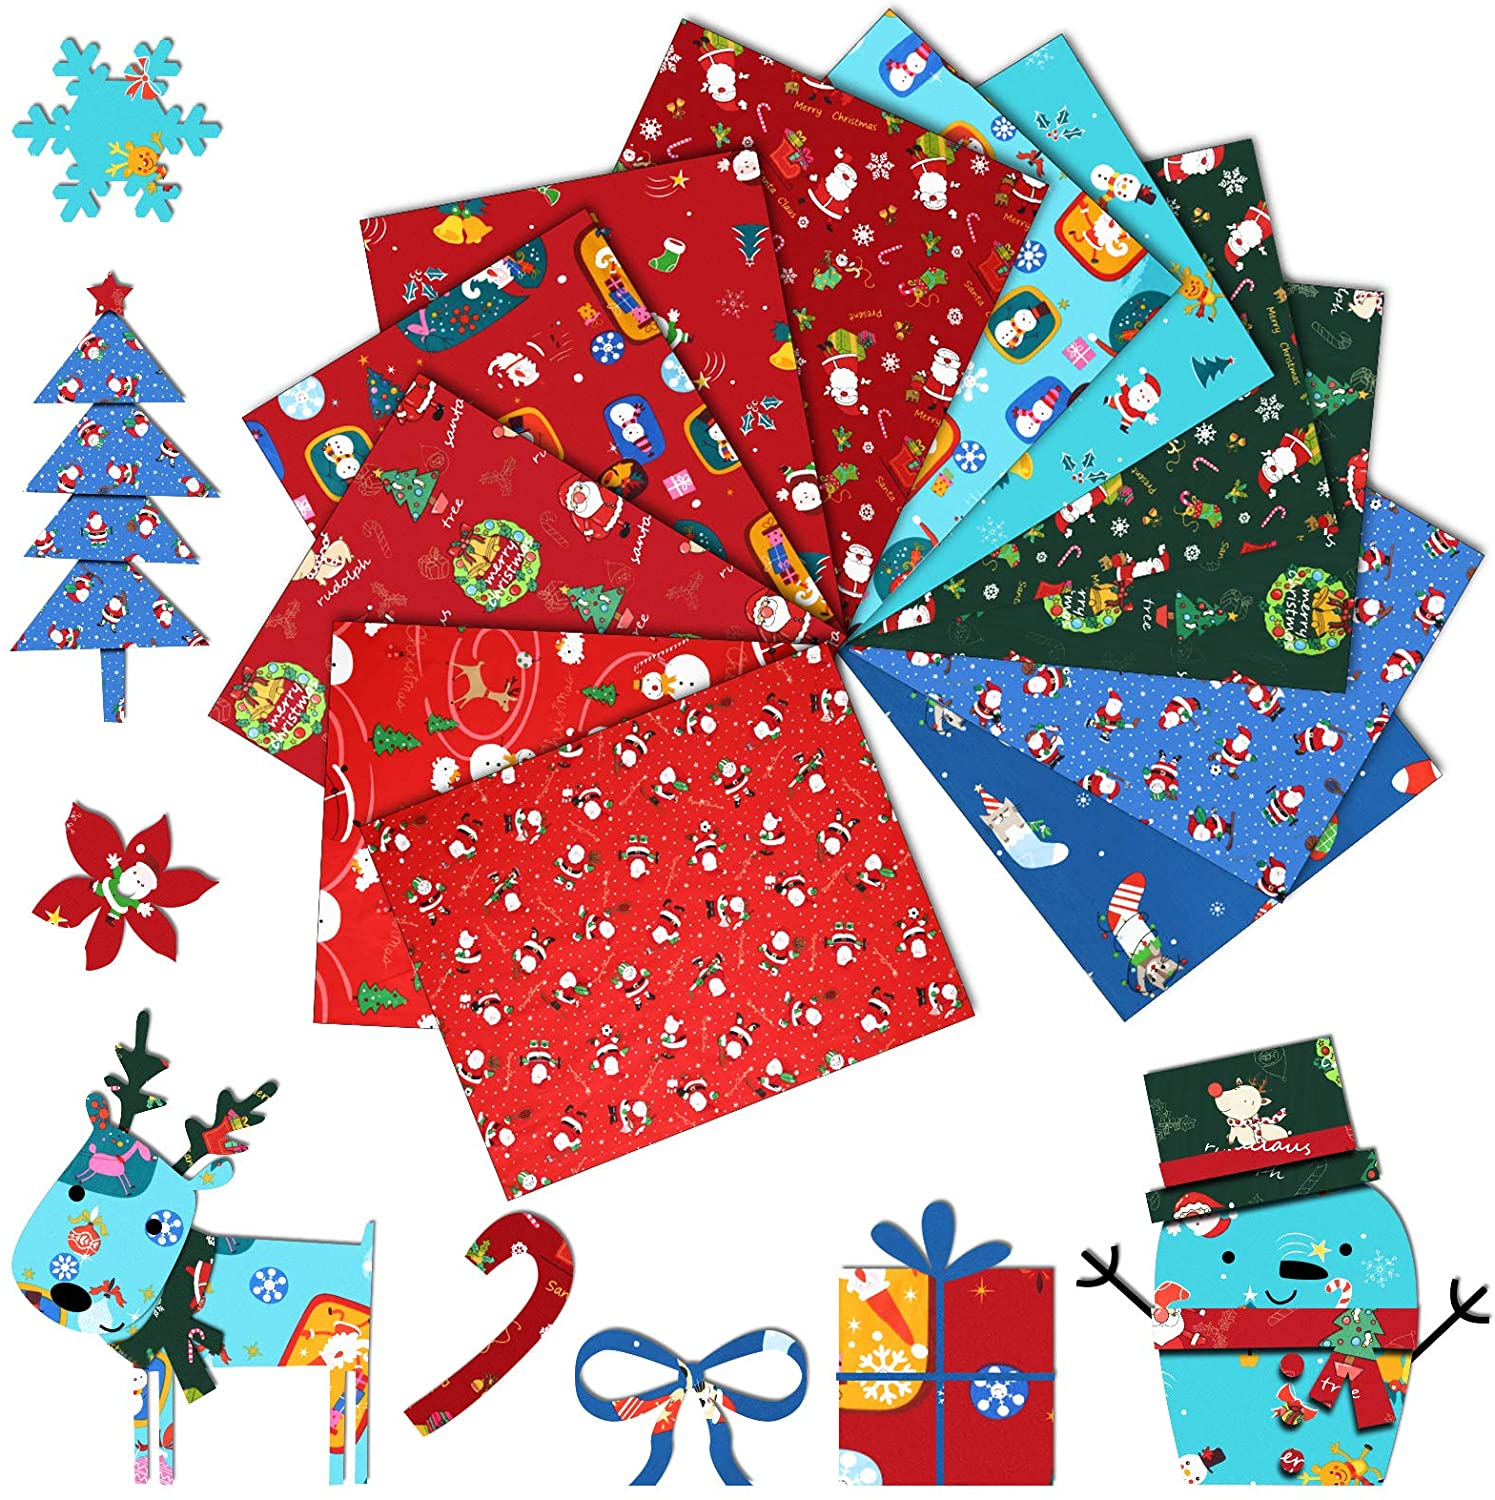 12 Pieces 16 x 20 Inch Christmas Cotton Fabric Bundle Squares Precut Fabric Quilting Fat Quarters Squares Christmas Tree Quarter Bundle Precut Santa Claus Fabric Scraps for Christmas DIY Sewing